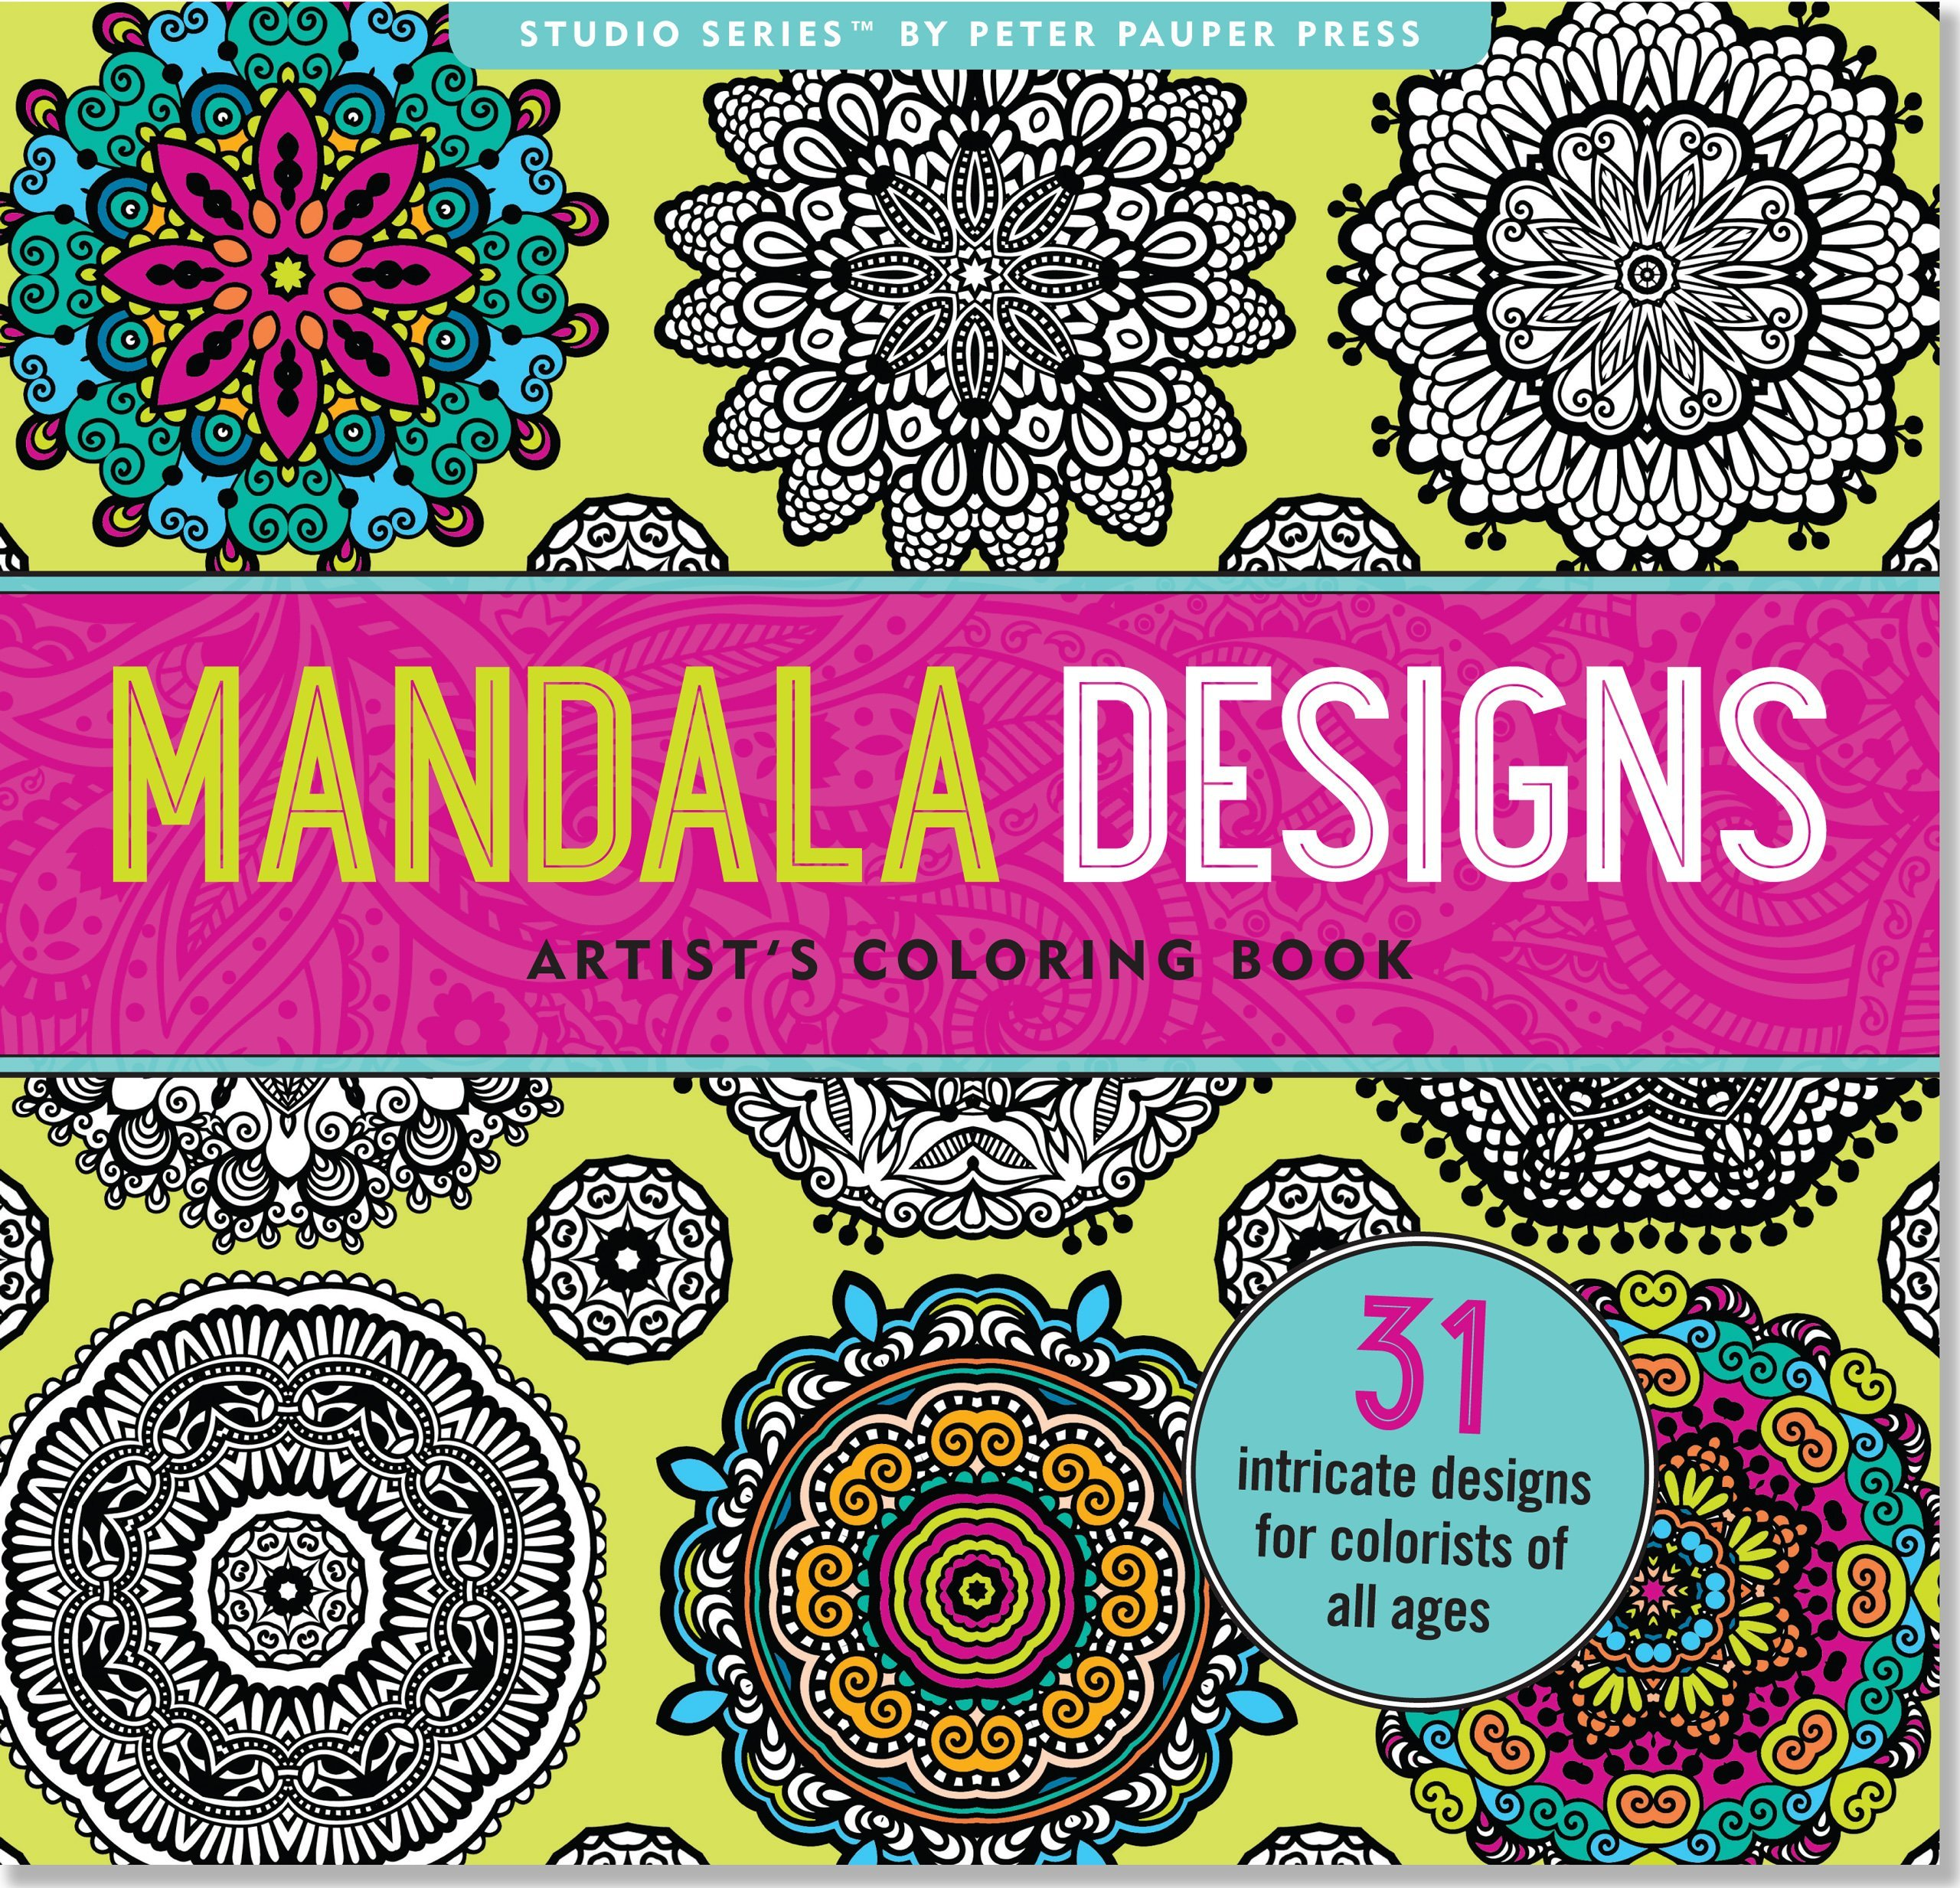 mandala designs adult coloring book by peter pauper press - Pattern Coloring Books